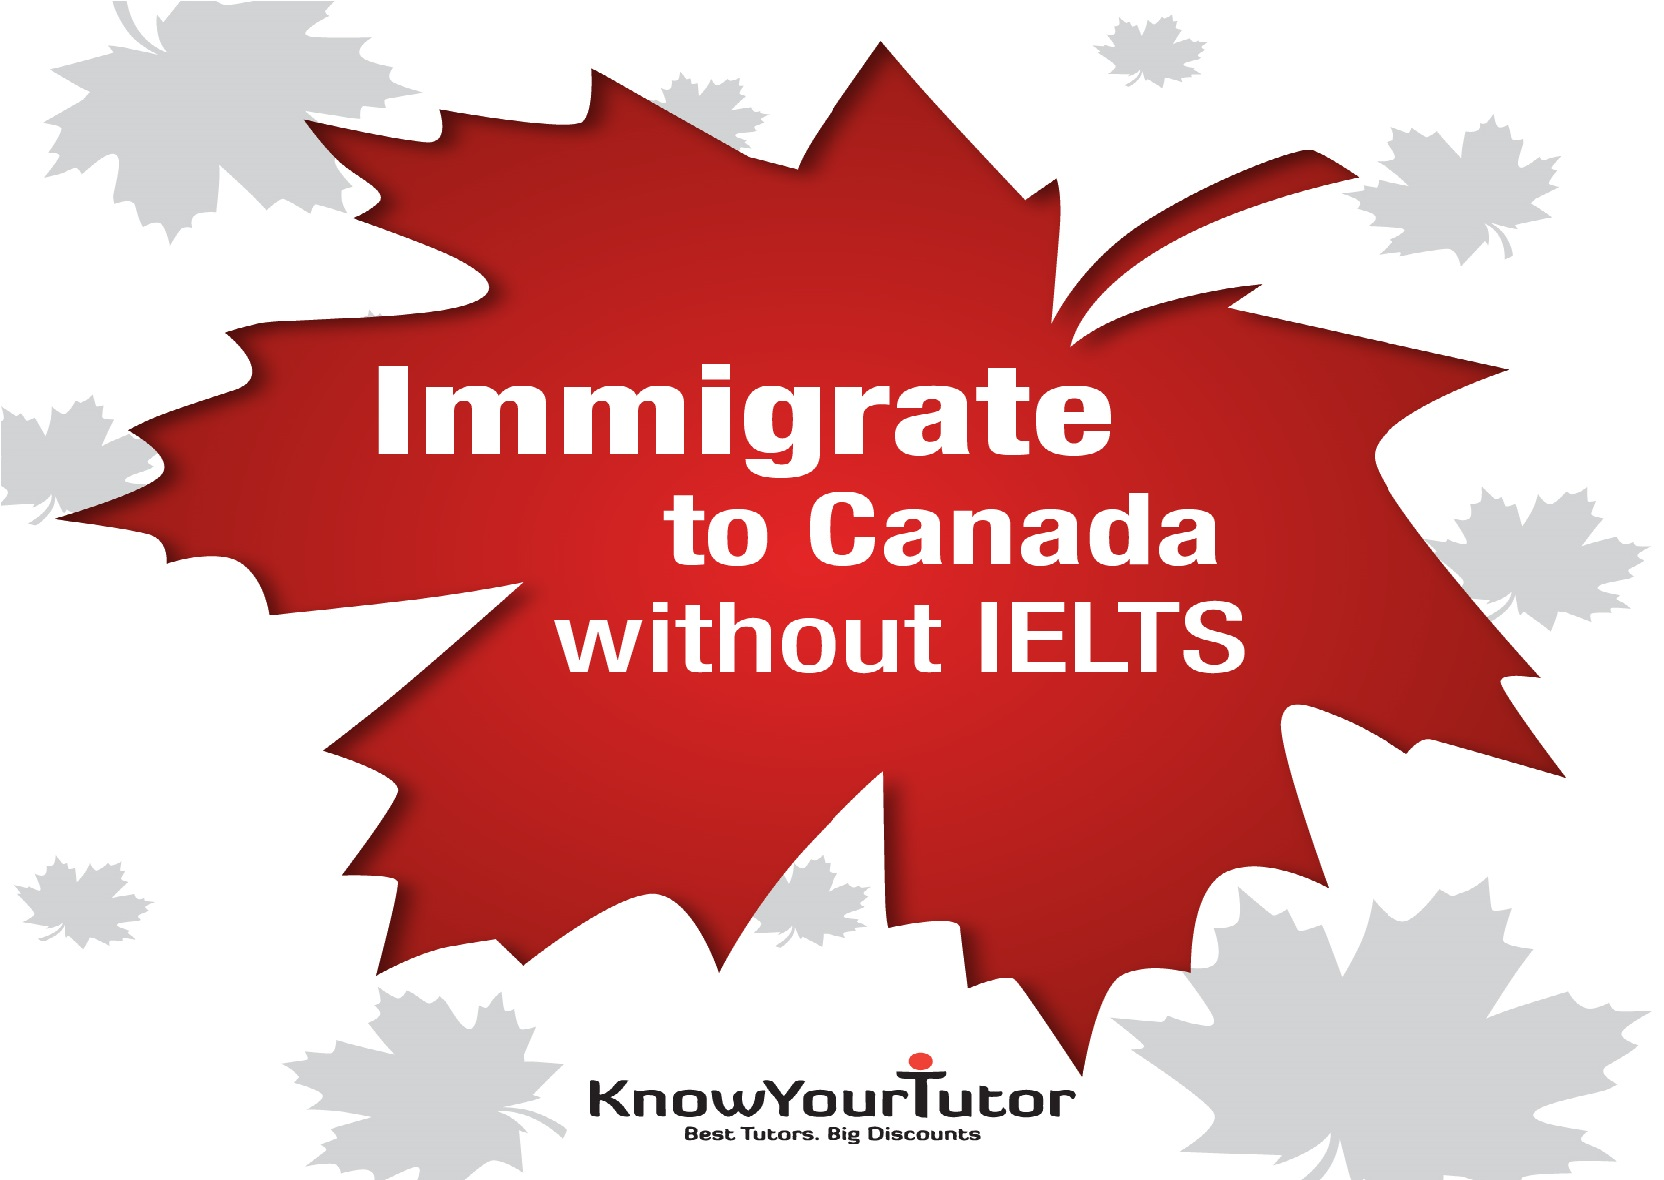 Immigrate to Canada without IELTS